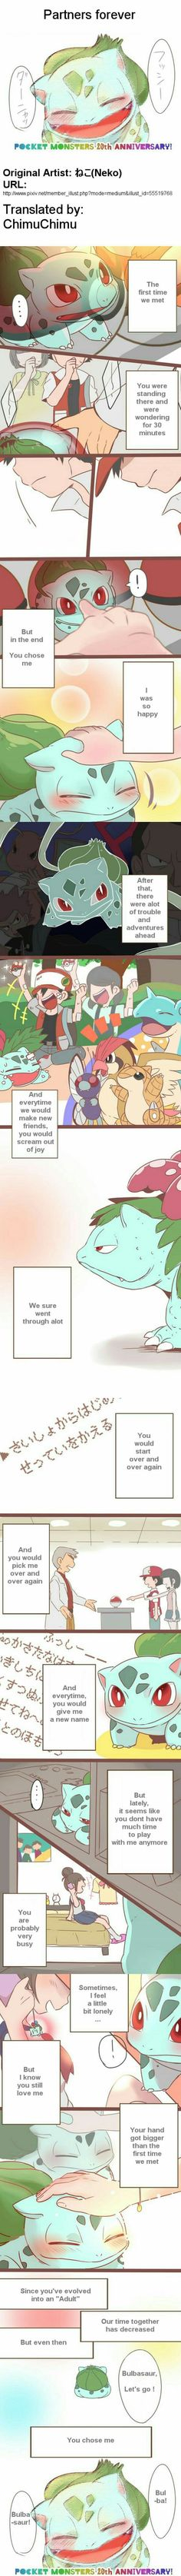 Partners Forever, Bulbasaur, cute, text, comic, sad, Trainer, Pokeball, Red, Professor Oak; Pokémon